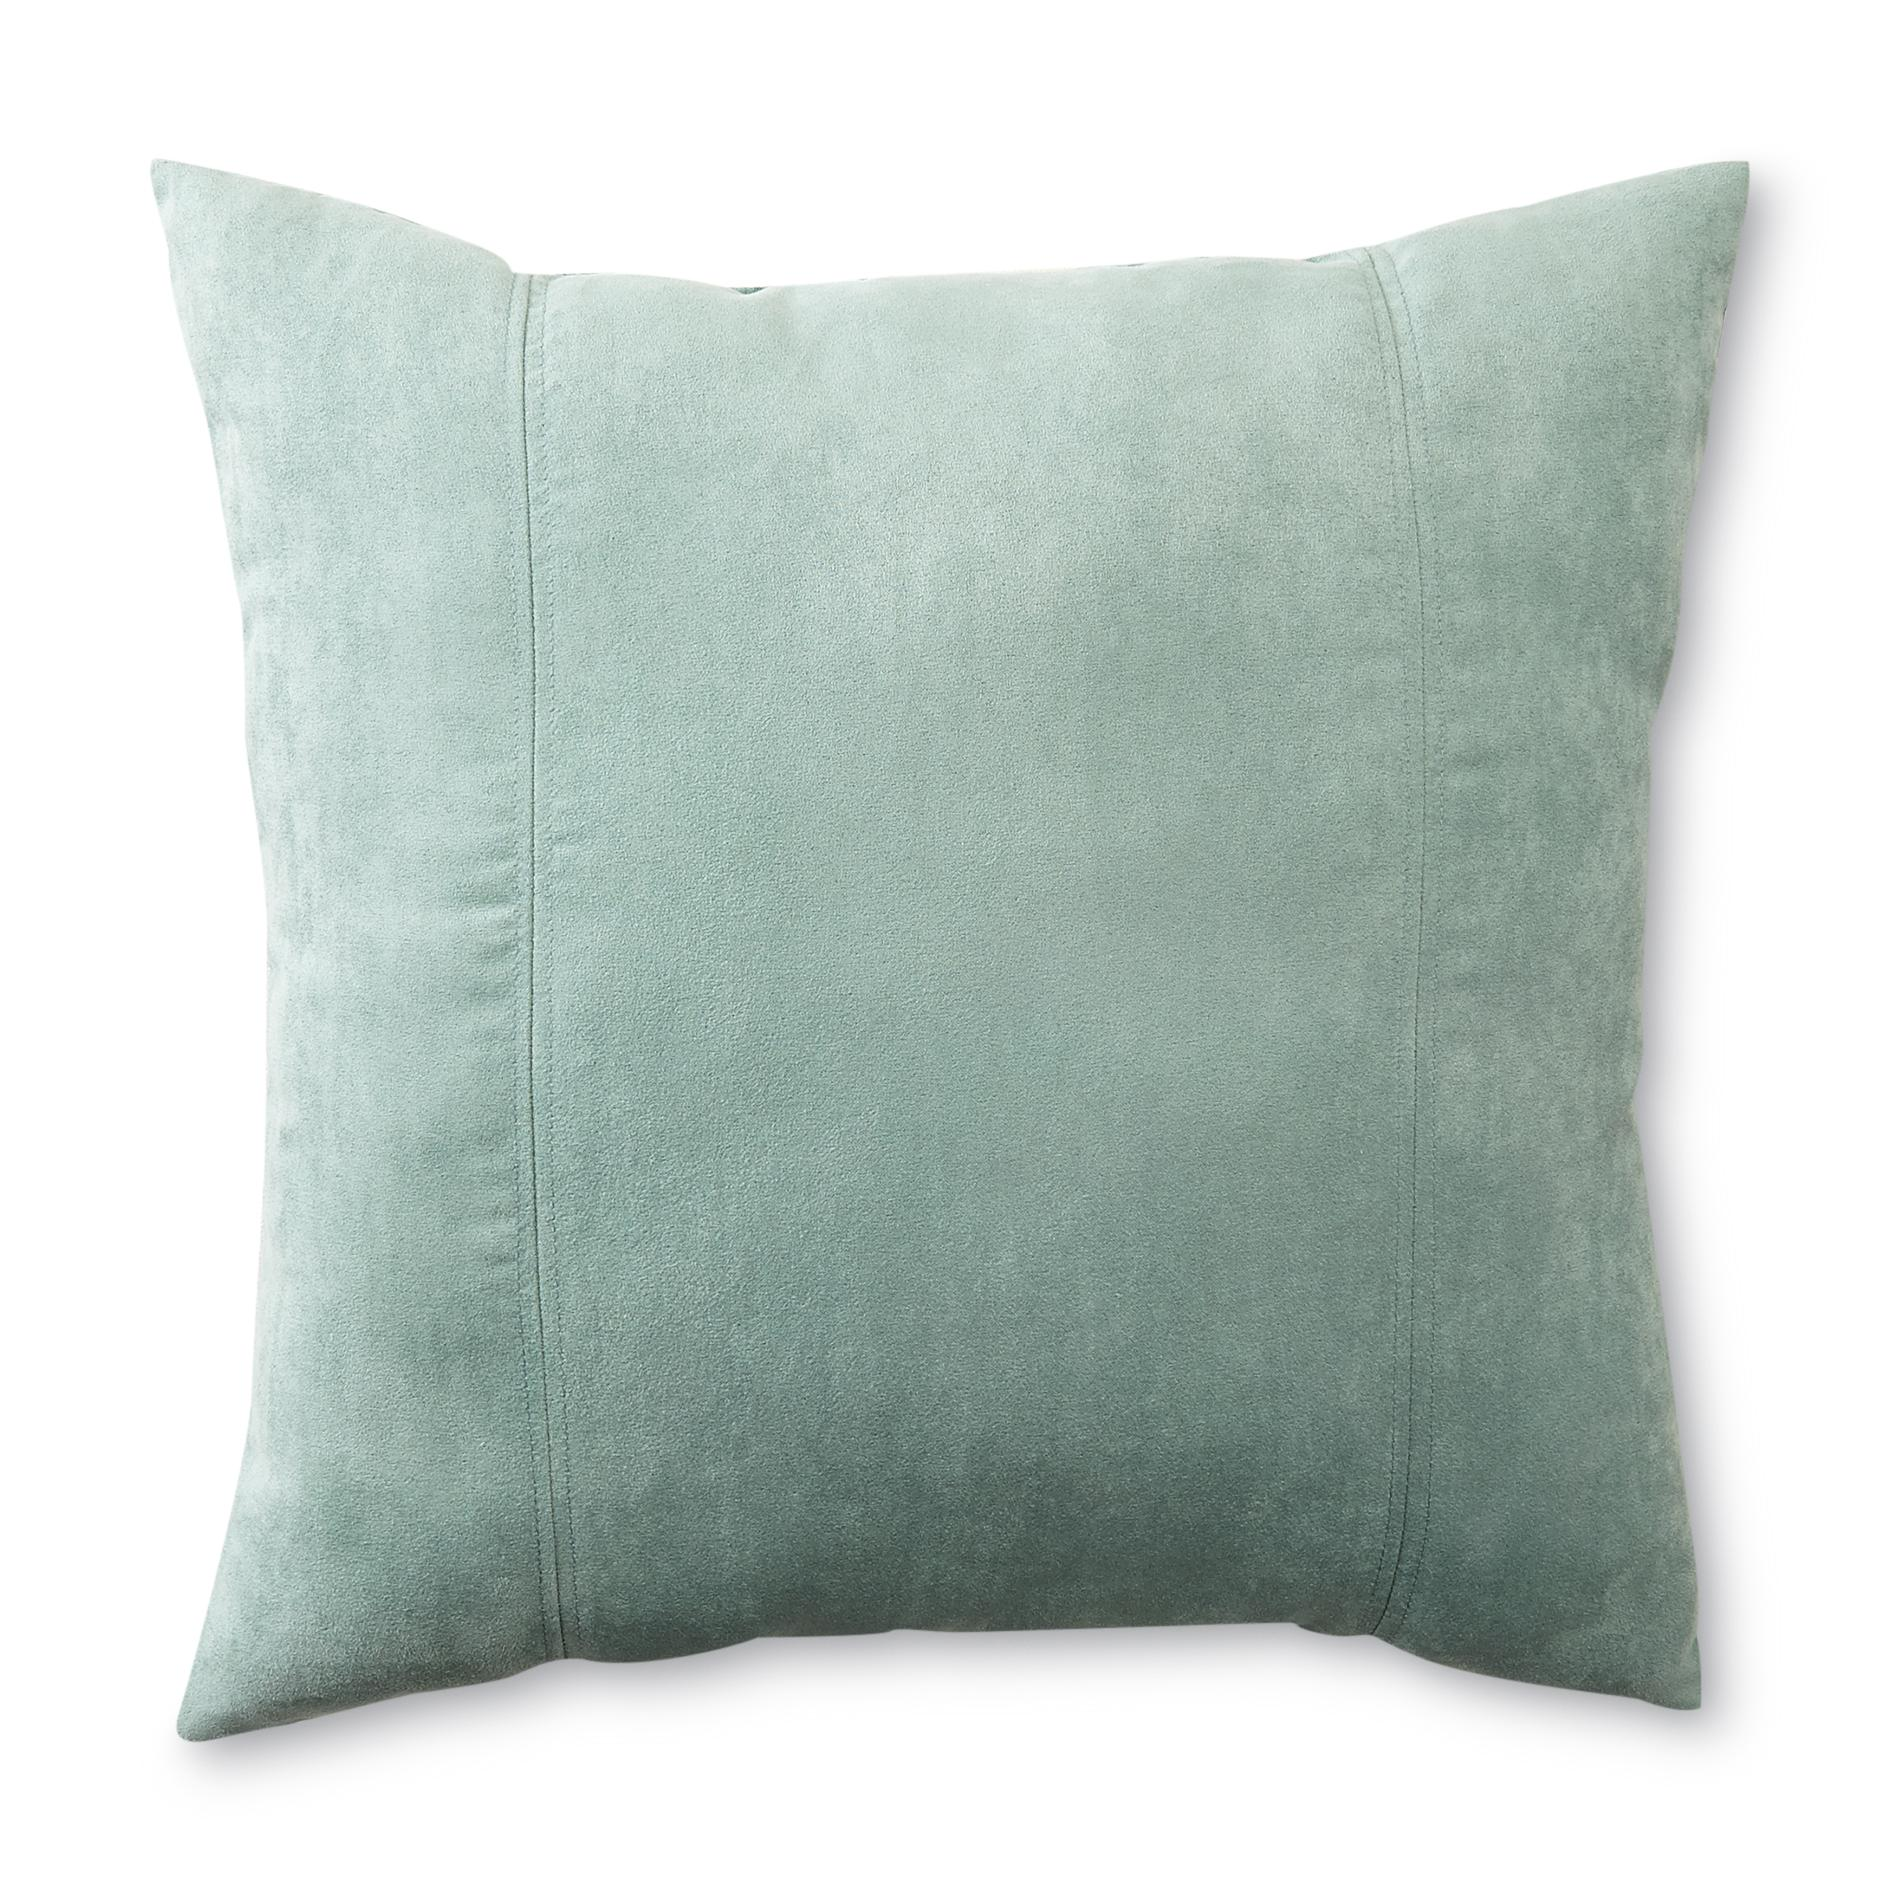 Decorative Pillows Kmart : Polyester Decorative Pillow Kmart.com